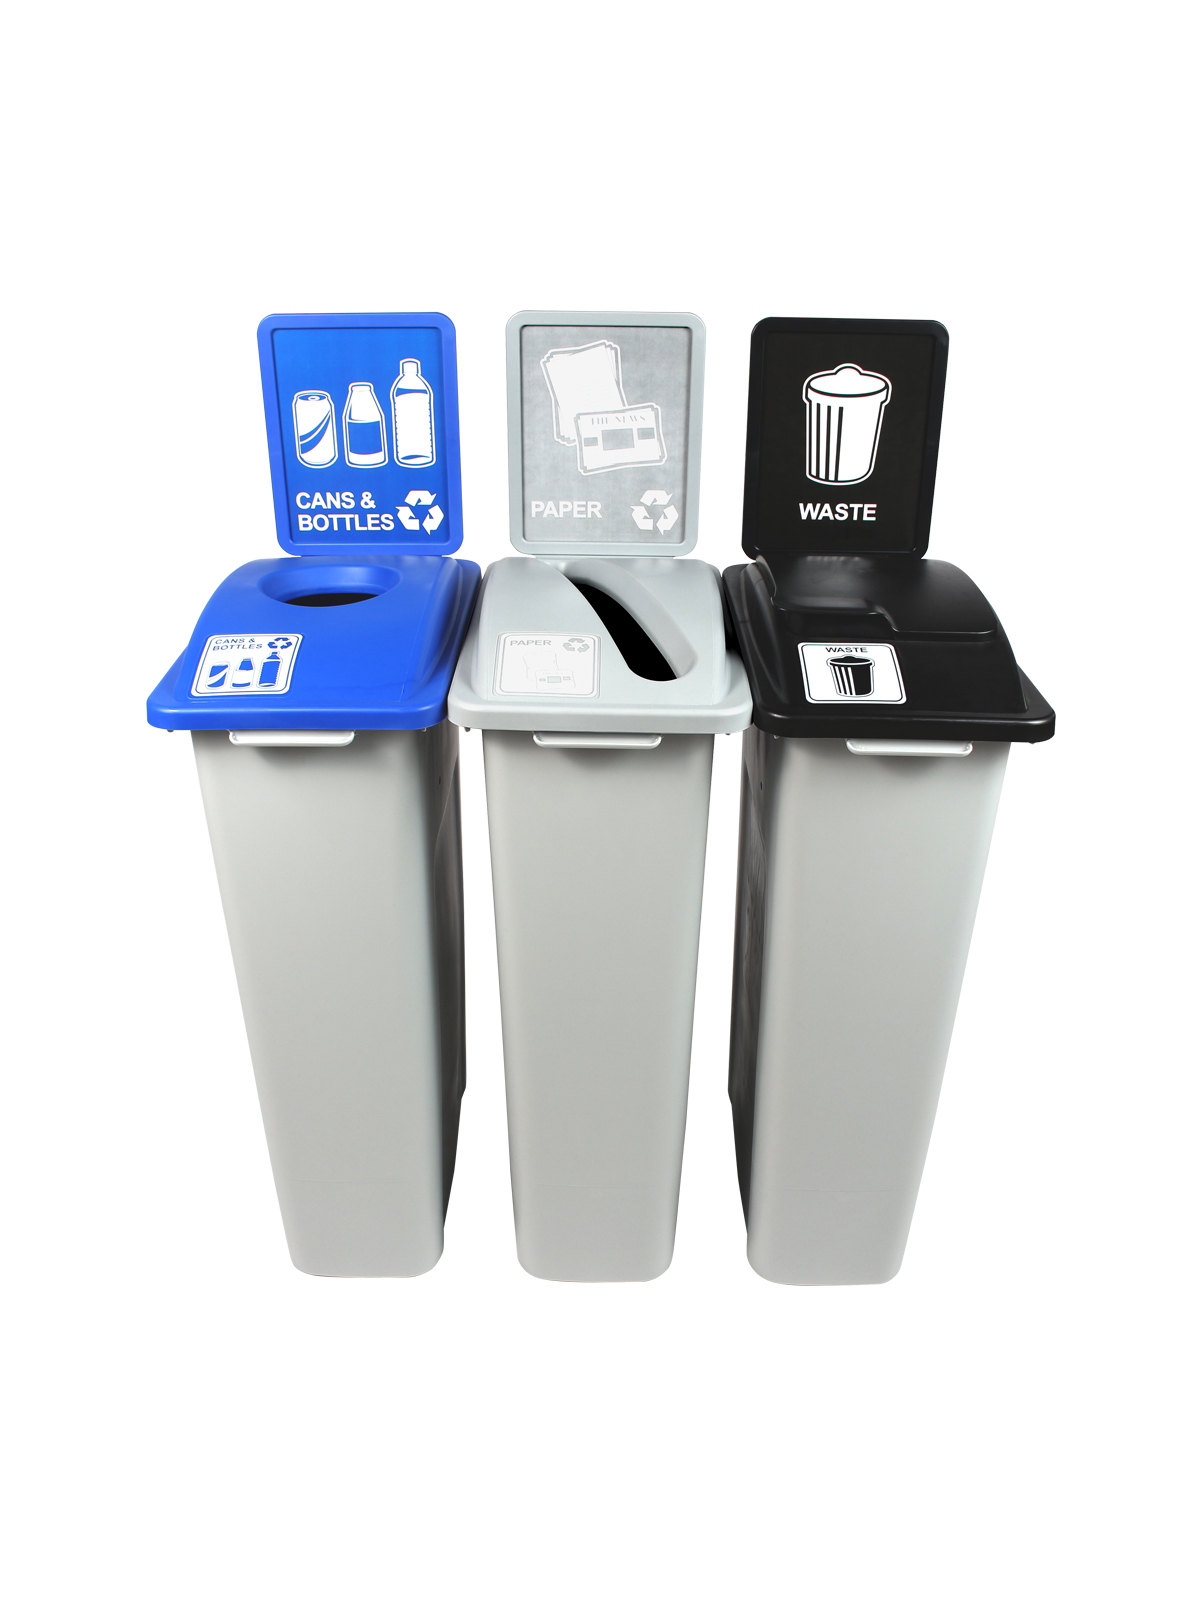 WASTE WATCHER - Triple - Cans & Bottles-Paper-Waste - Circle-Slot-Solid Lift - Grey-Blue-Grey-Black